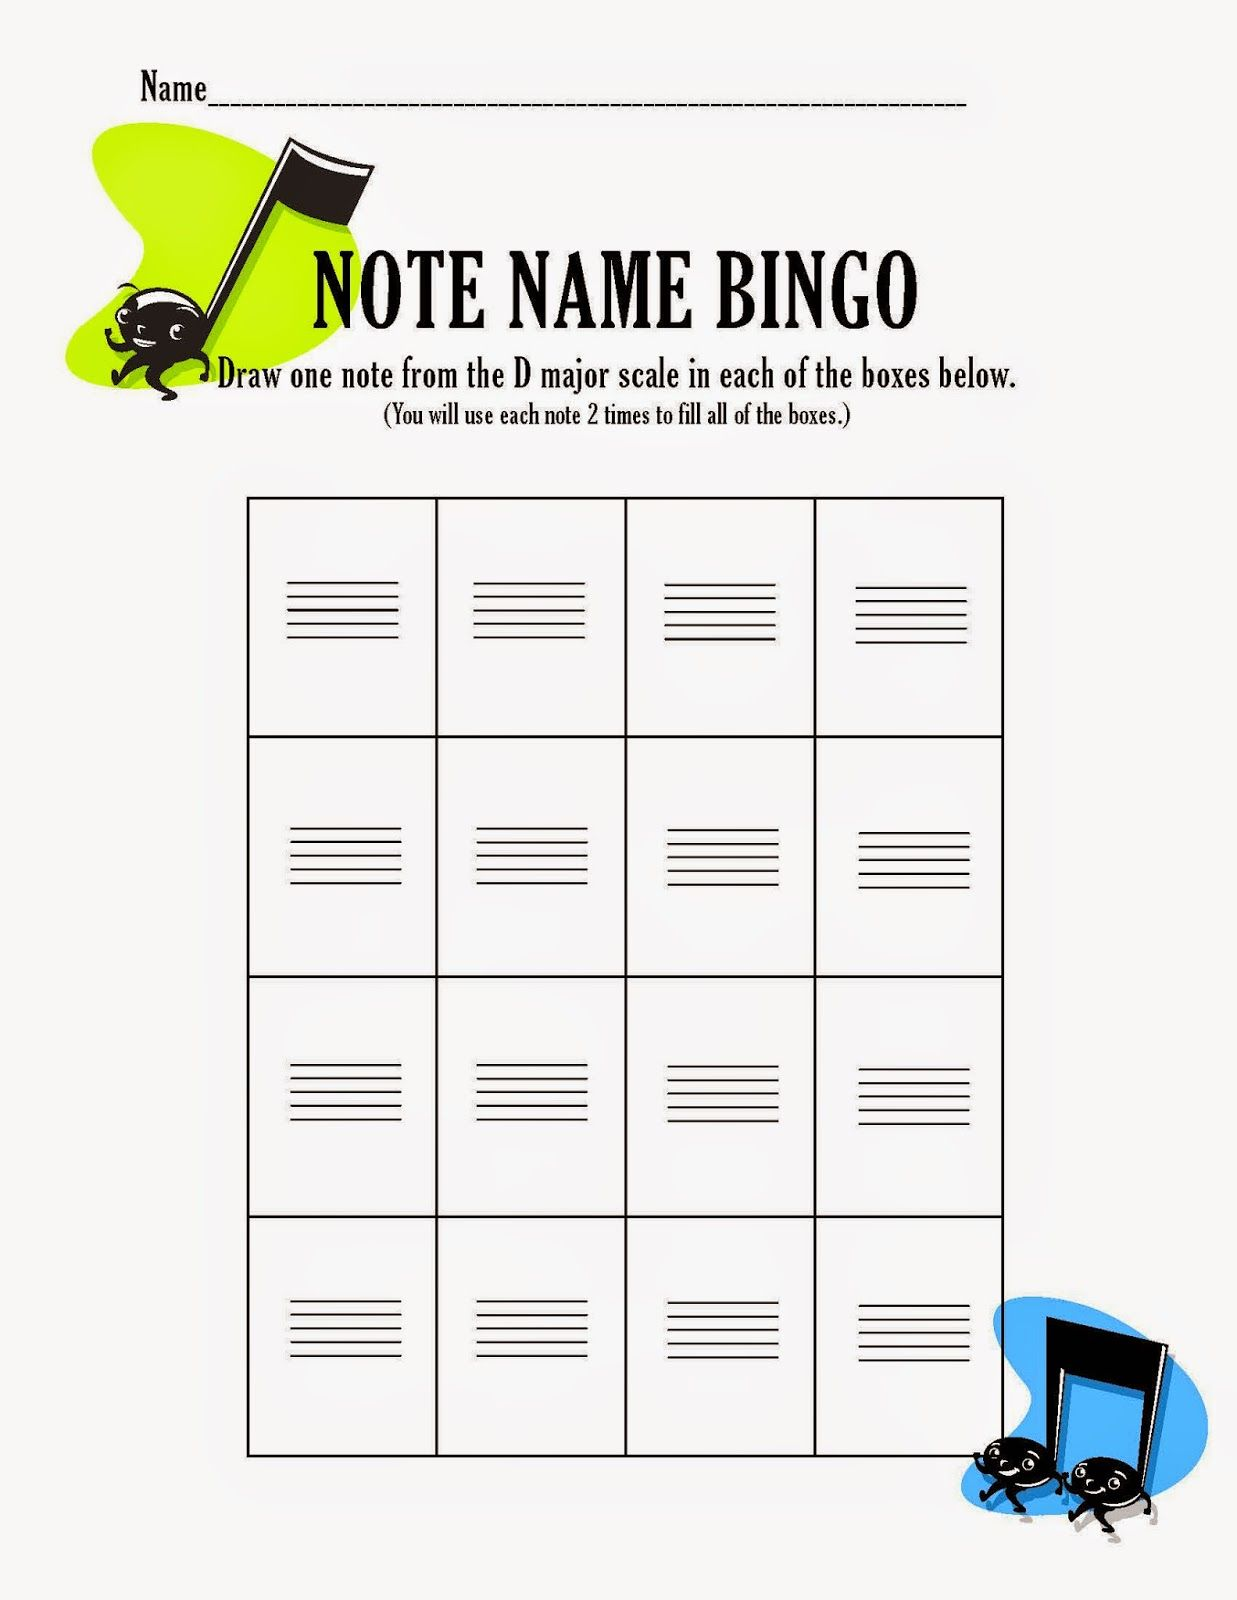 Review Game For Your Orchestra Band Choir Or Music